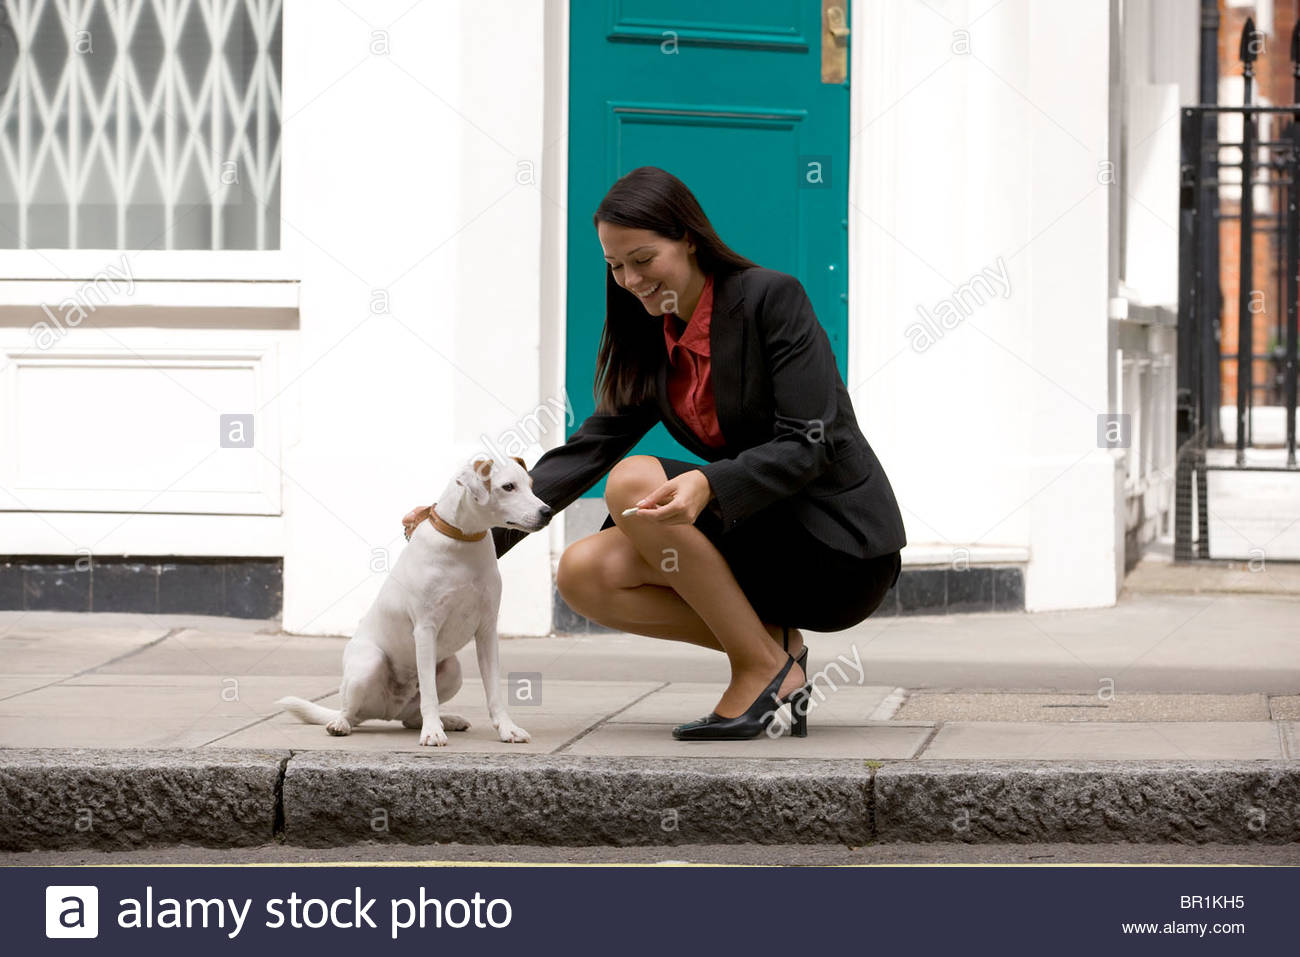 A businesswoman giving her dog a treat - Stock Image